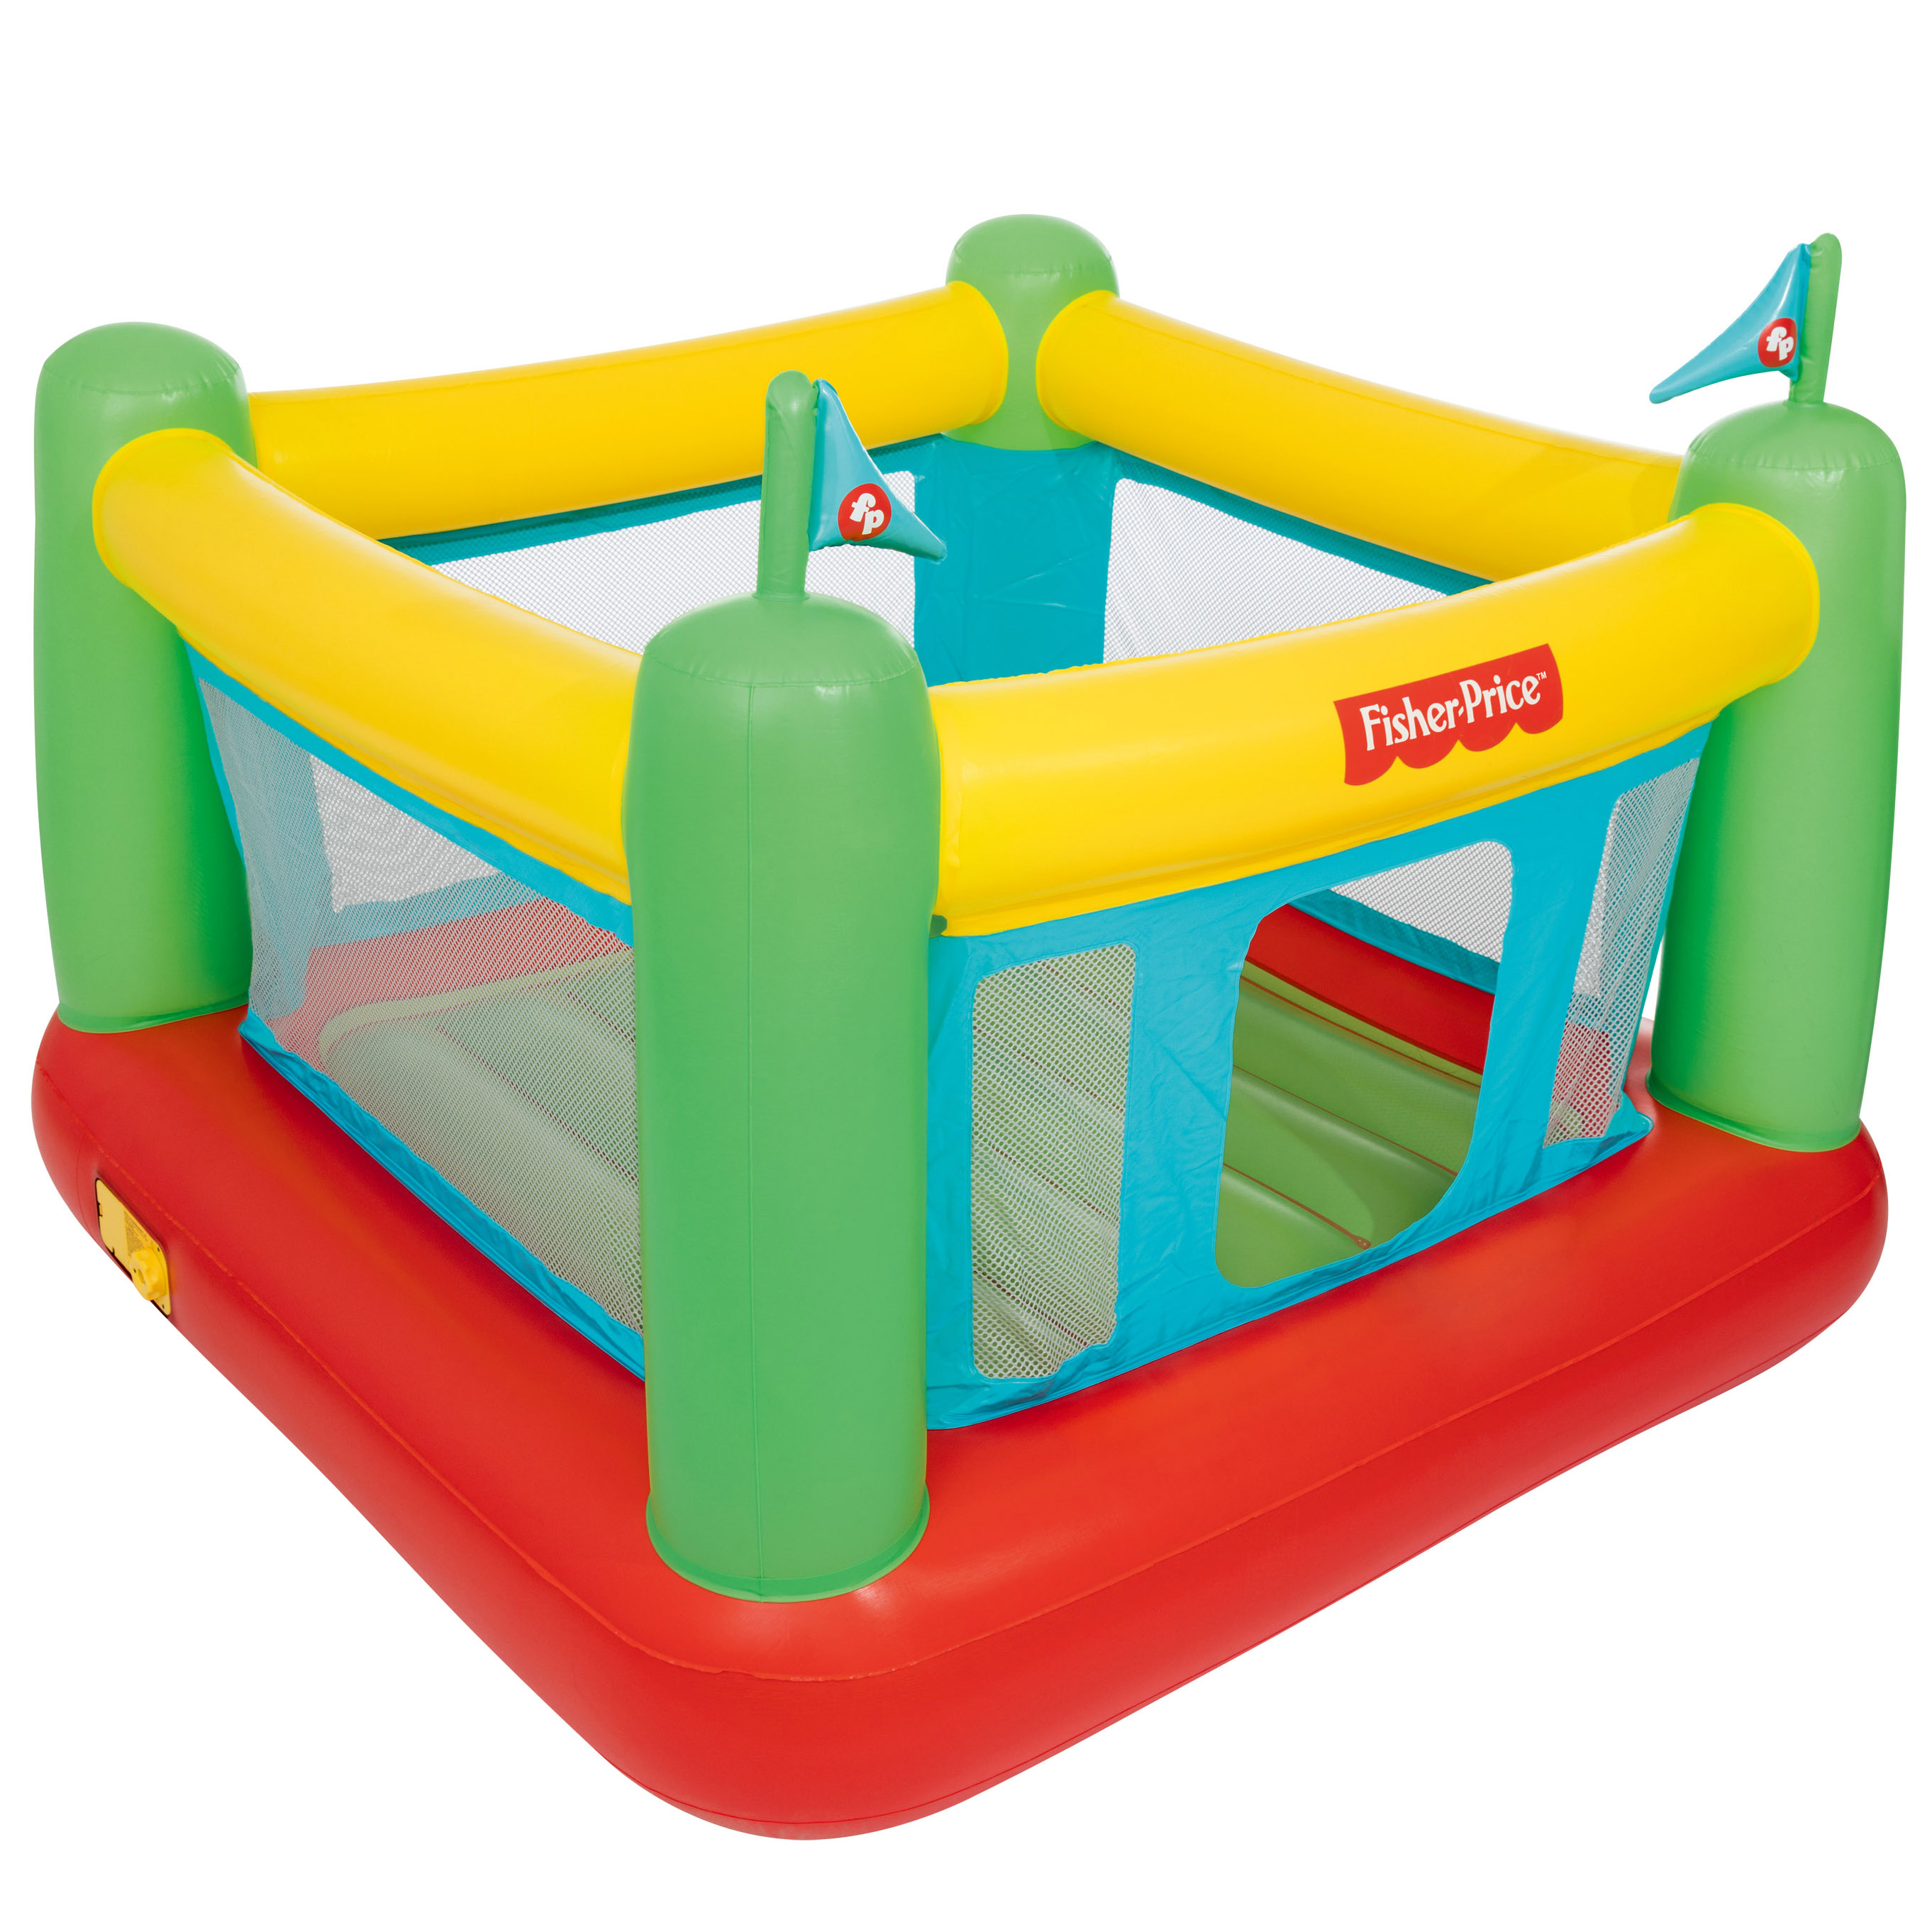 Fisher Price 69 X 68 X 53 Bouncer With Built In Pump Walmart Com